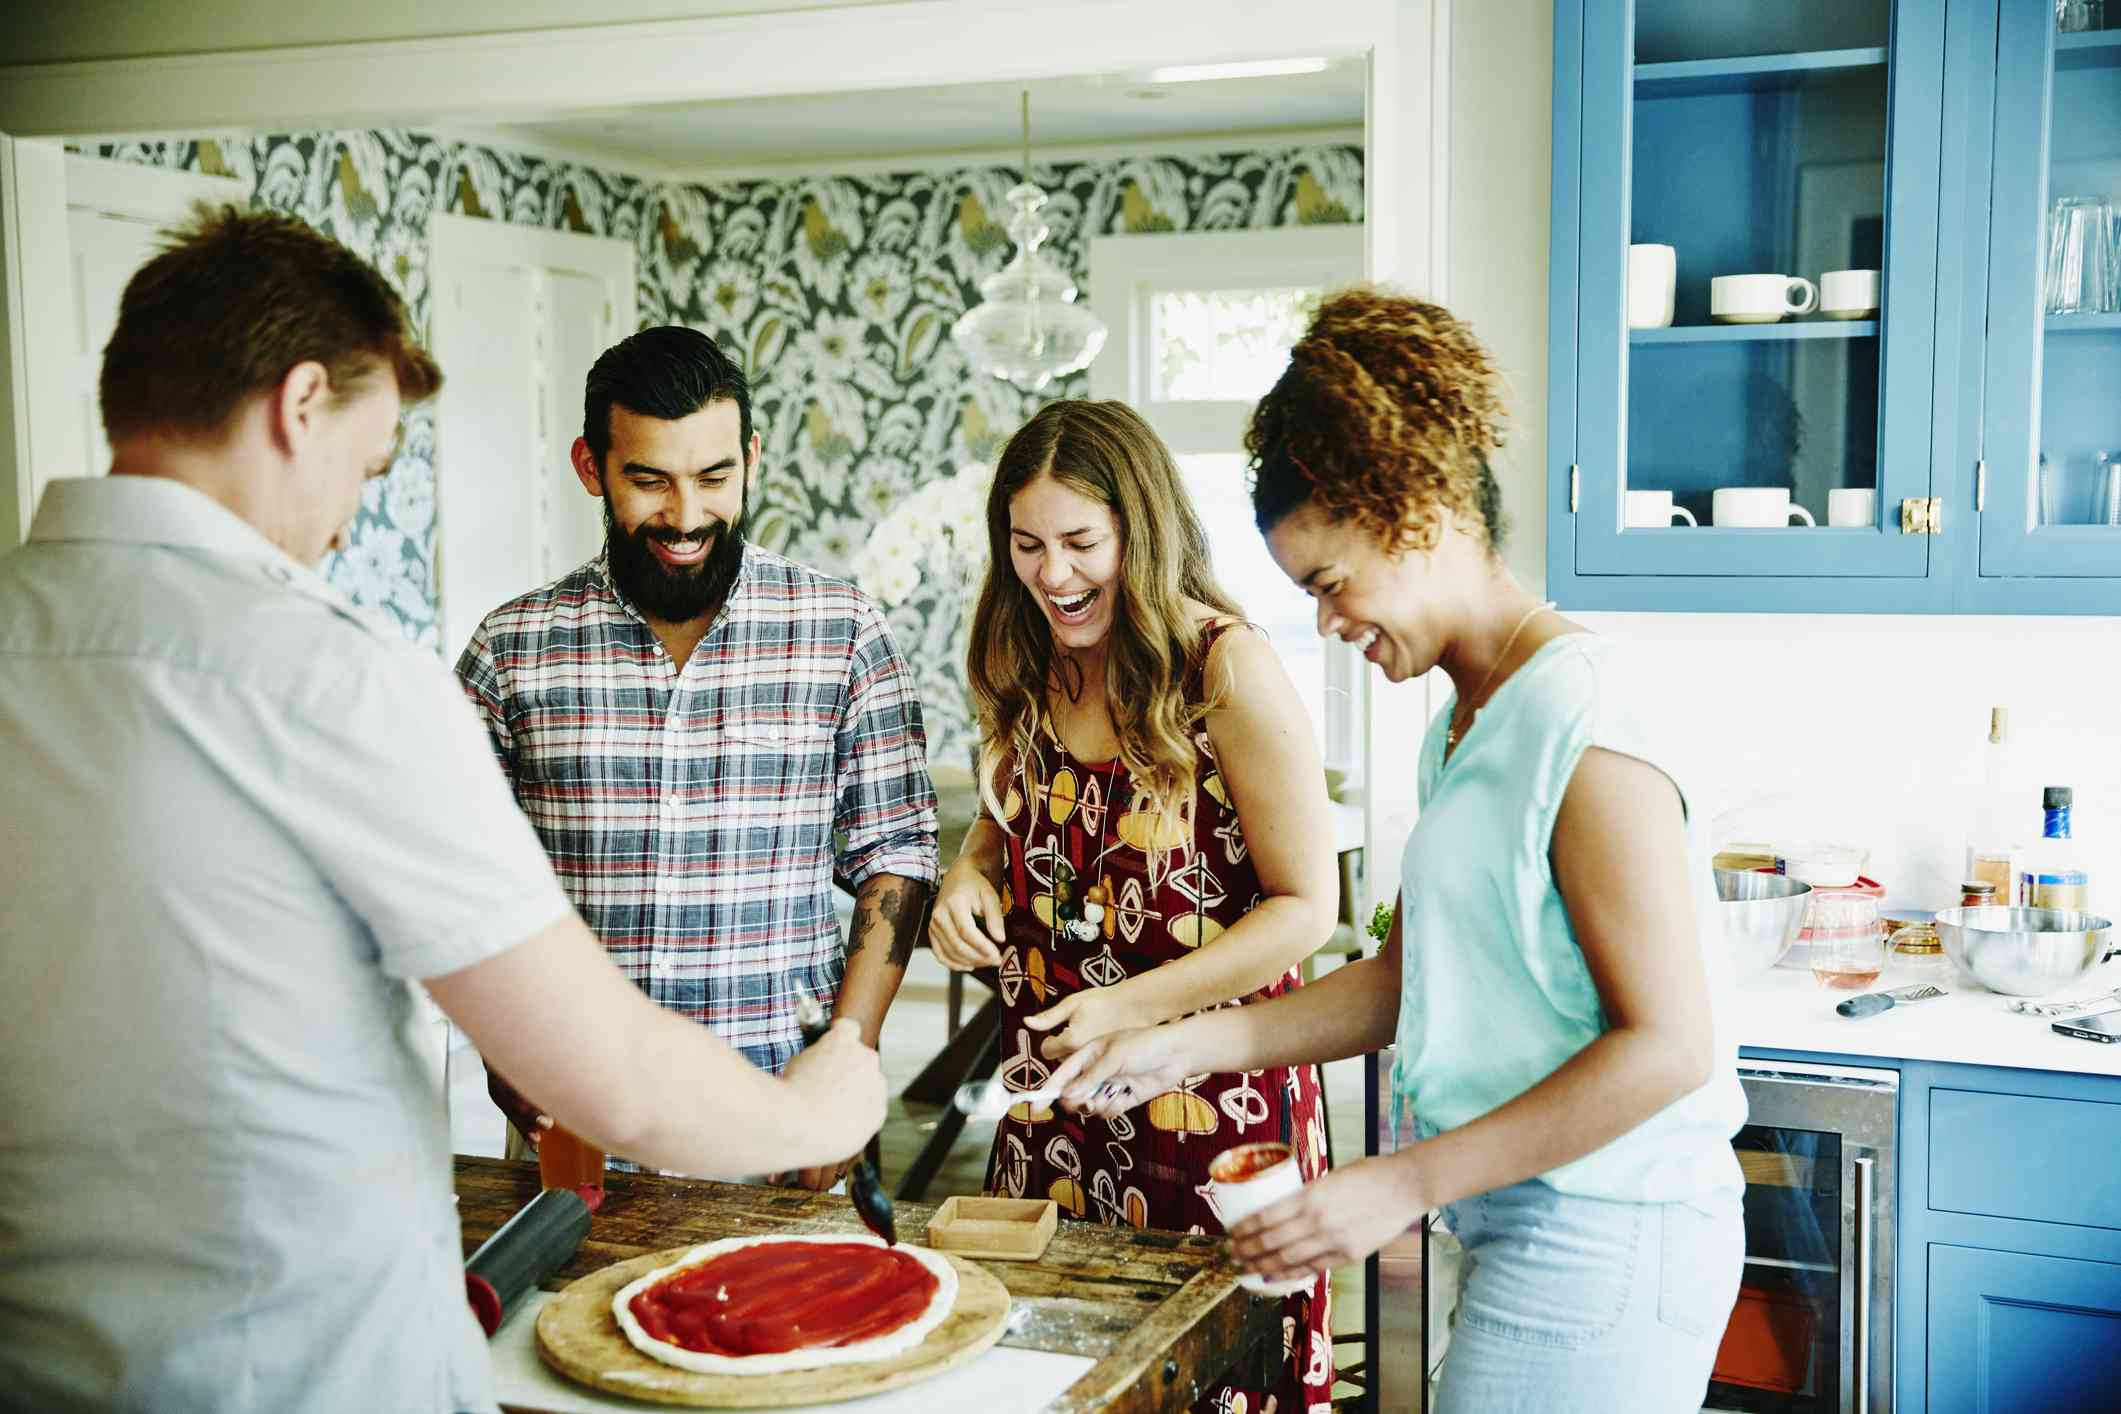 Laughing group of friends preparing pizza together in kitchen